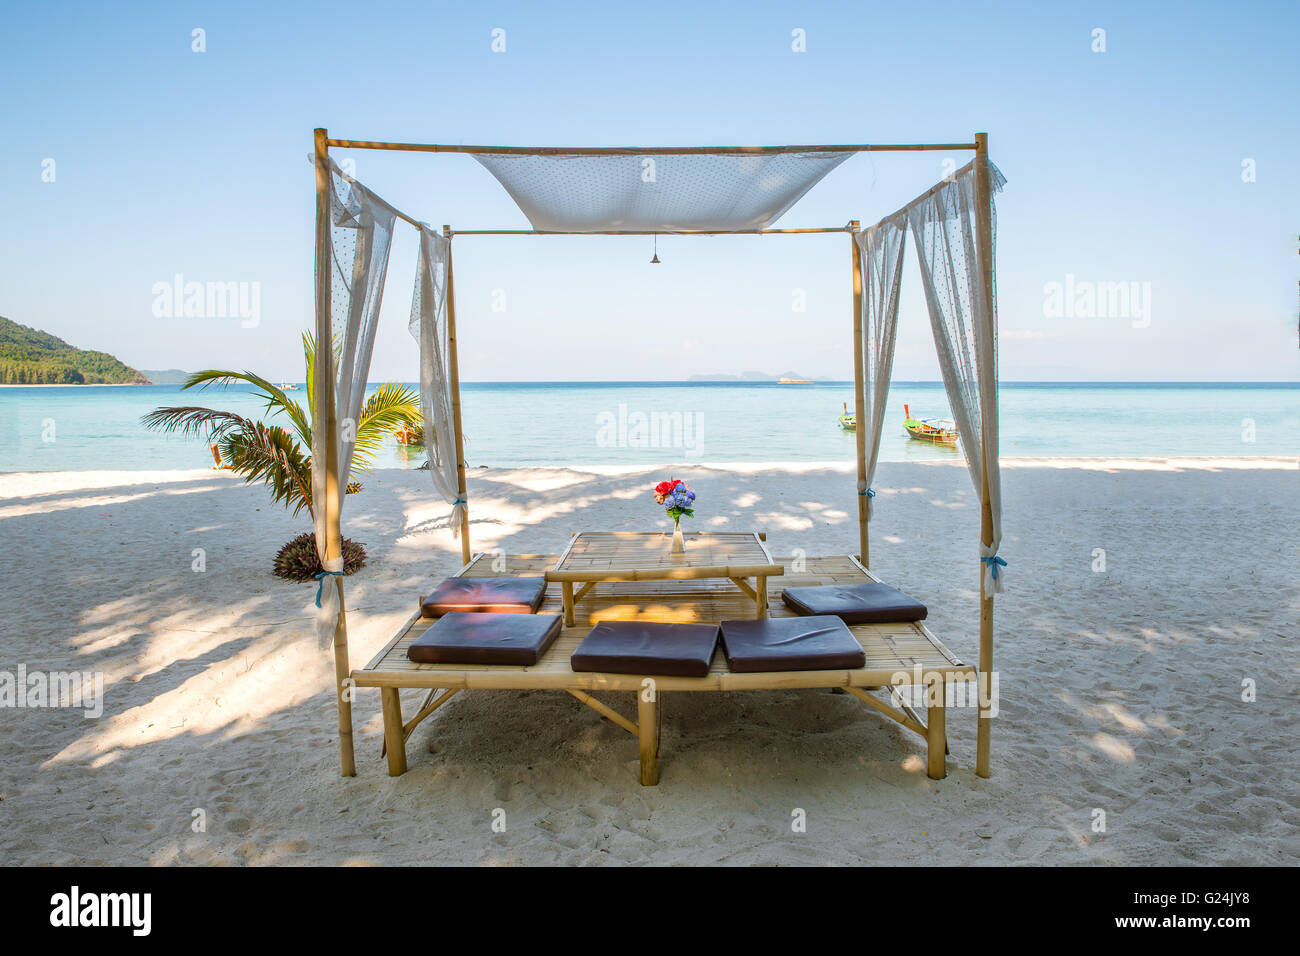 Romantic luxury dinner setting at tropical beach in Phuket, Thailand - Stock Image